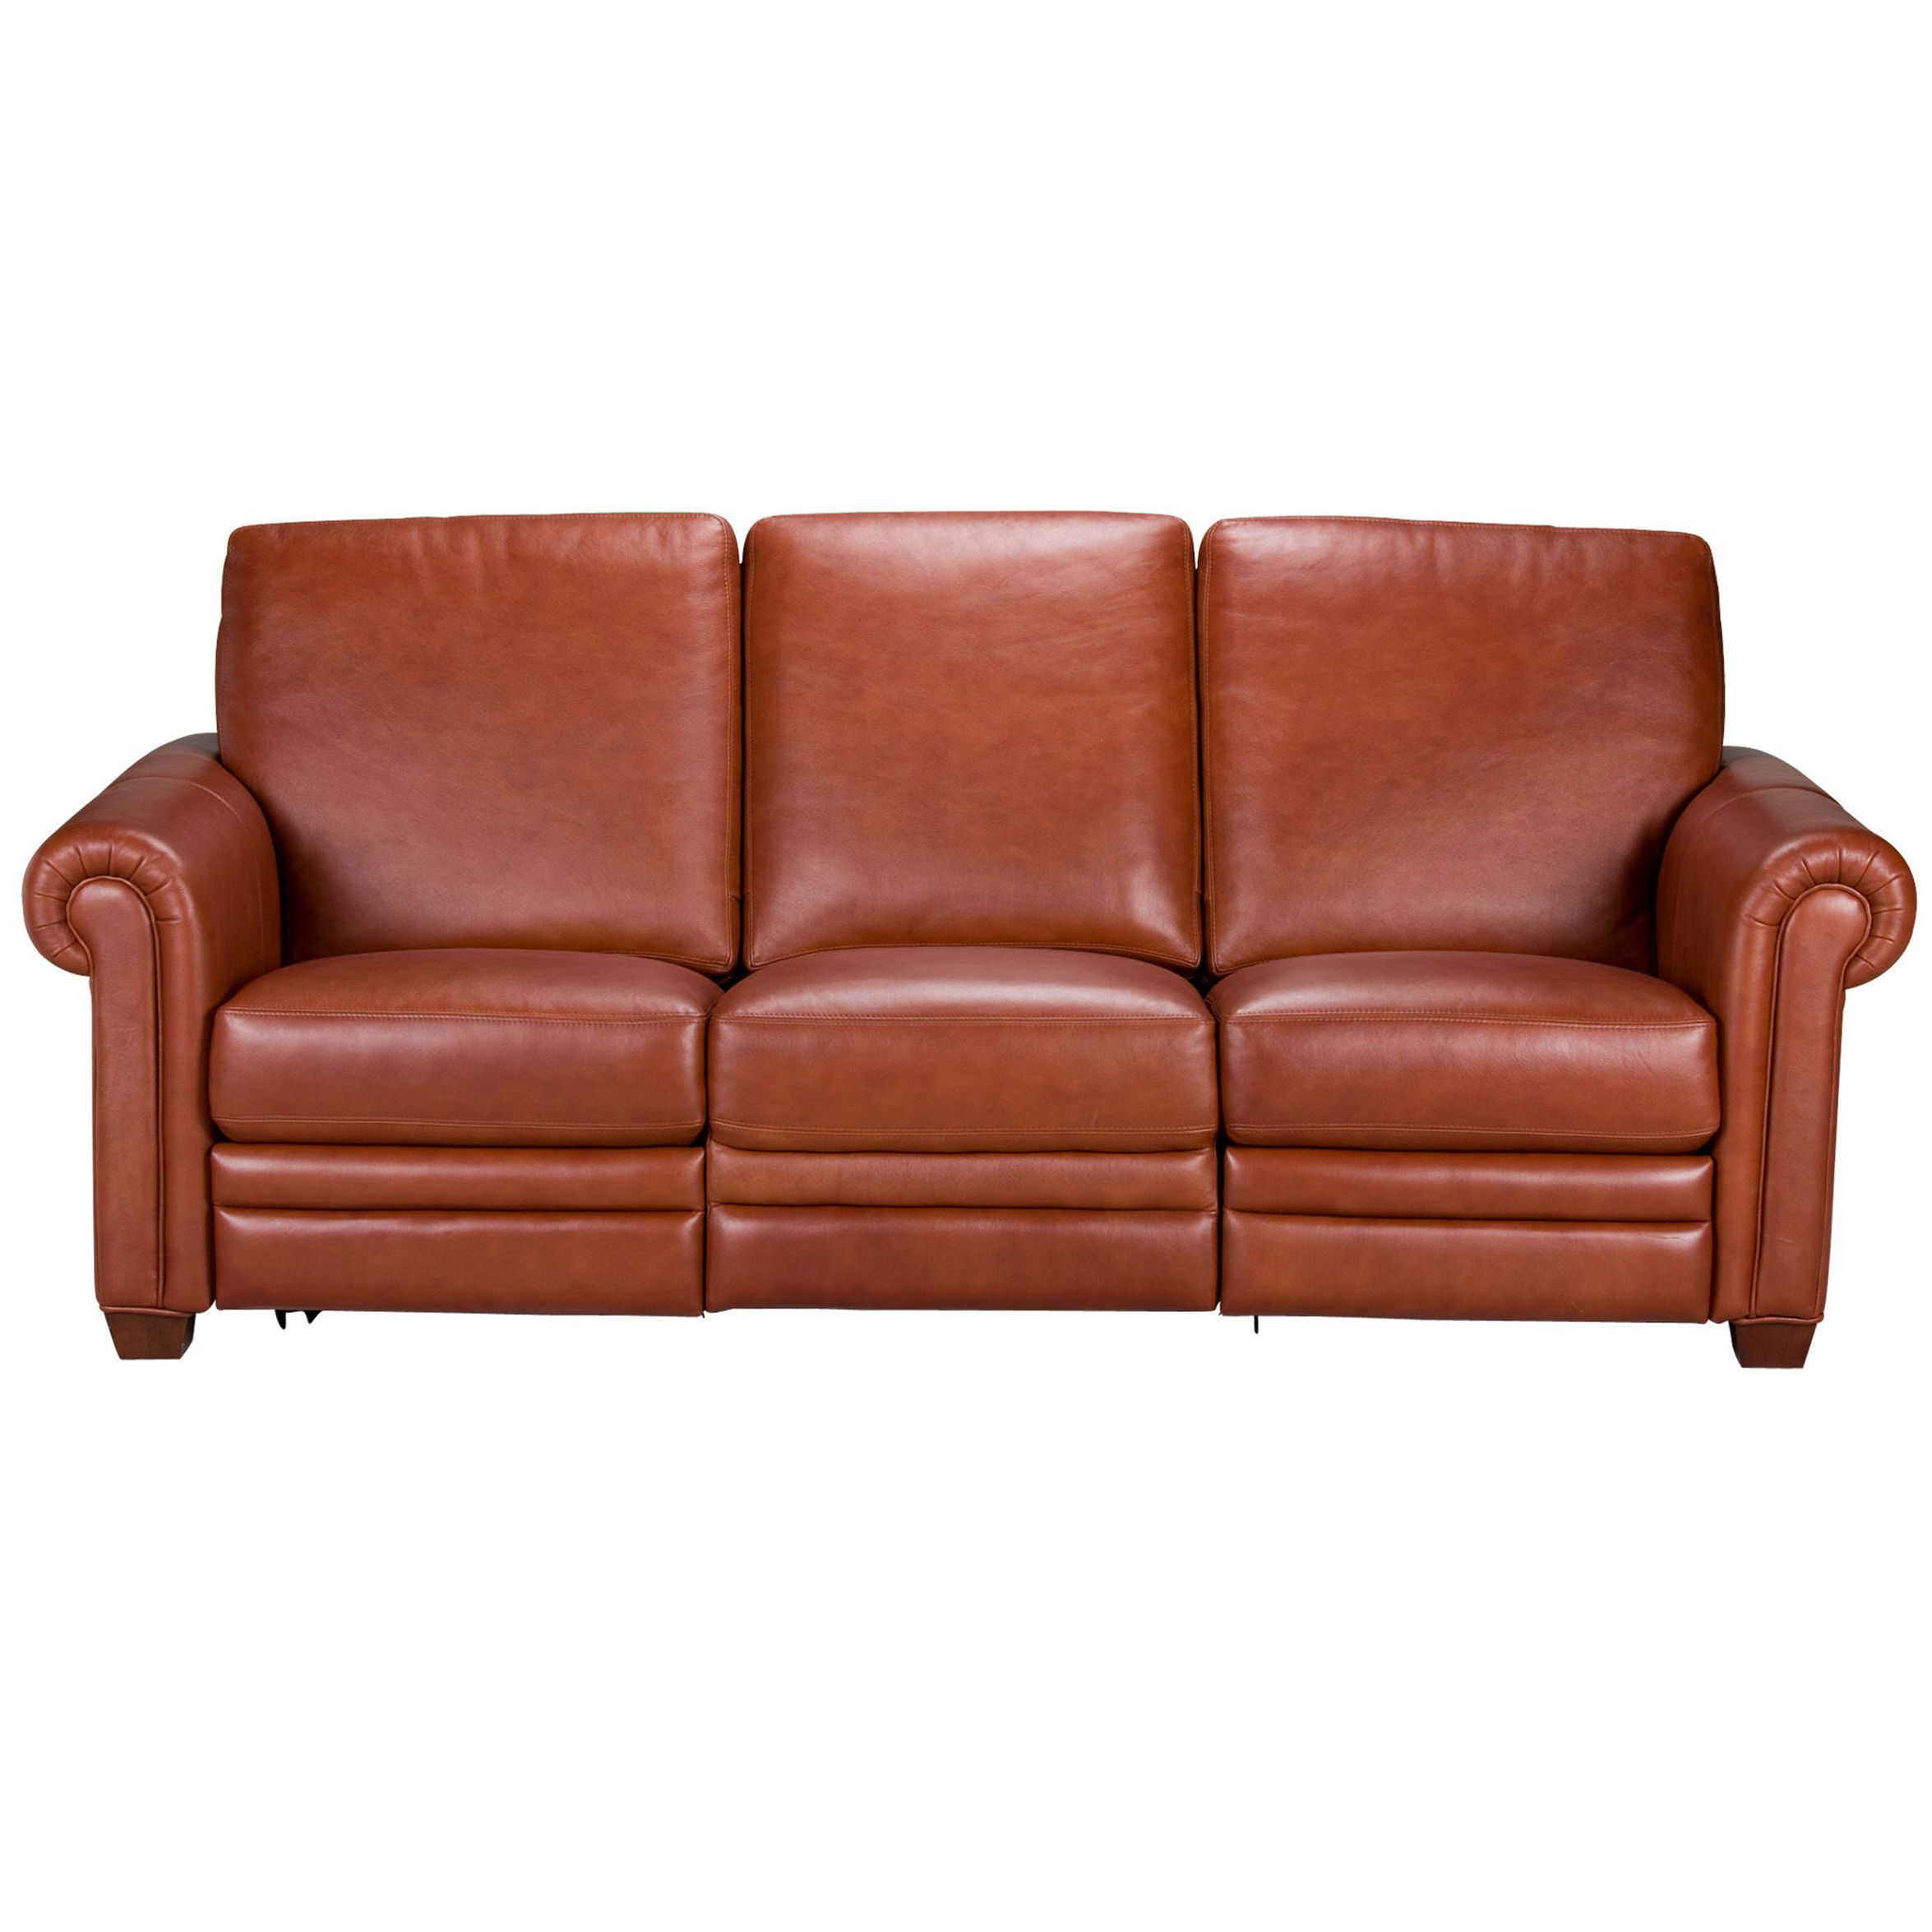 Living Room Sofa, Leather